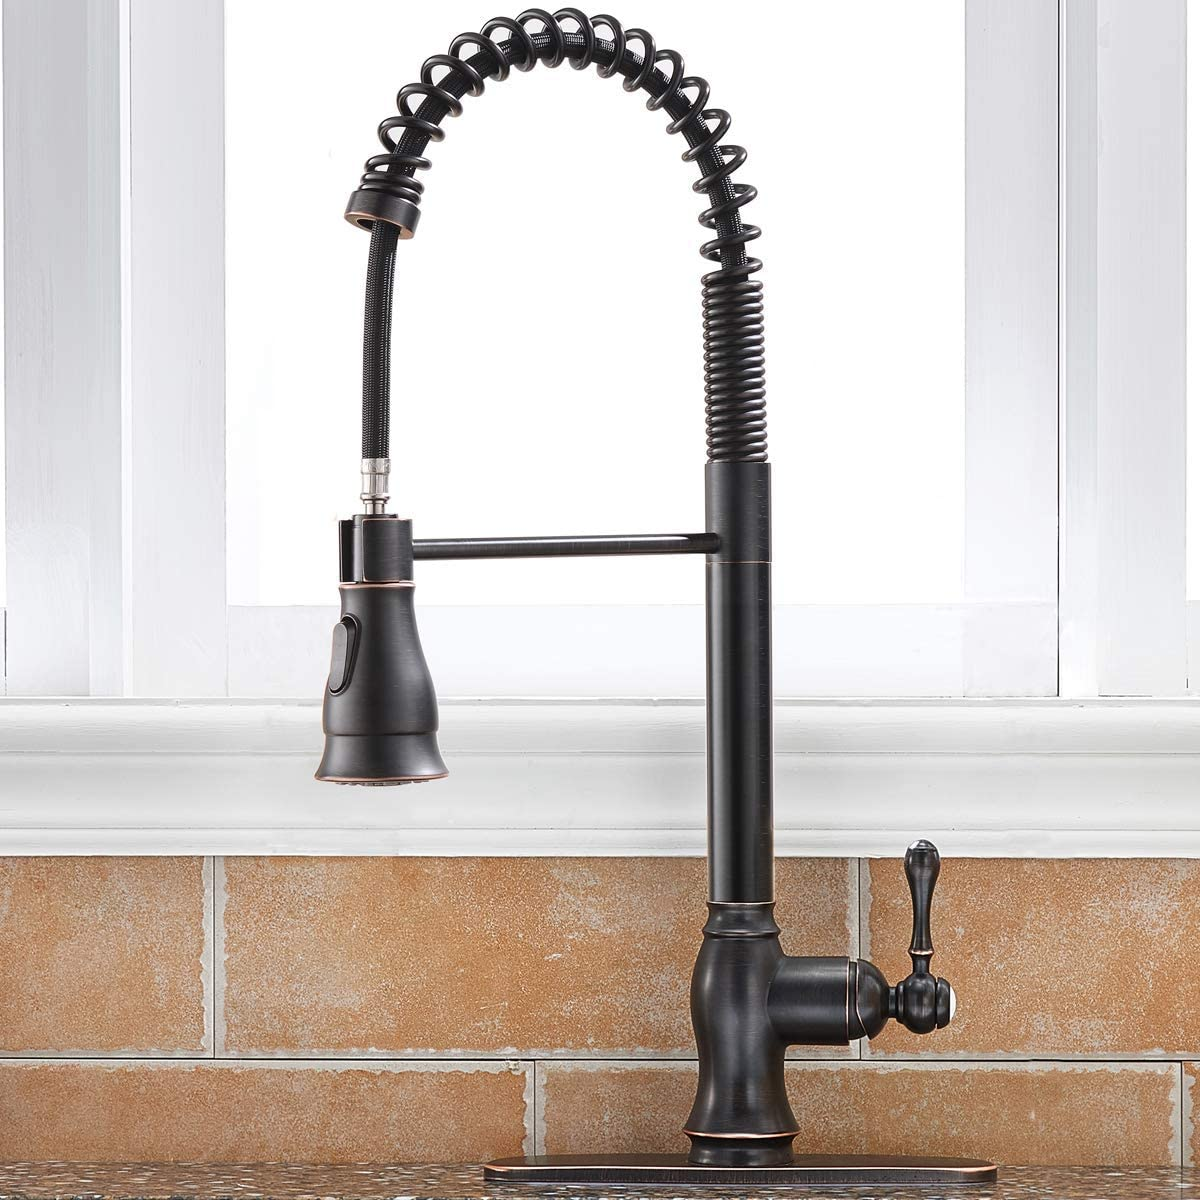 Shaco Antique Single Handle Pull Down Sprayer Oil Rubbed Bronze Kitchen Faucet Kitchen Faucet Bronze With Deck Plate Amazon Com